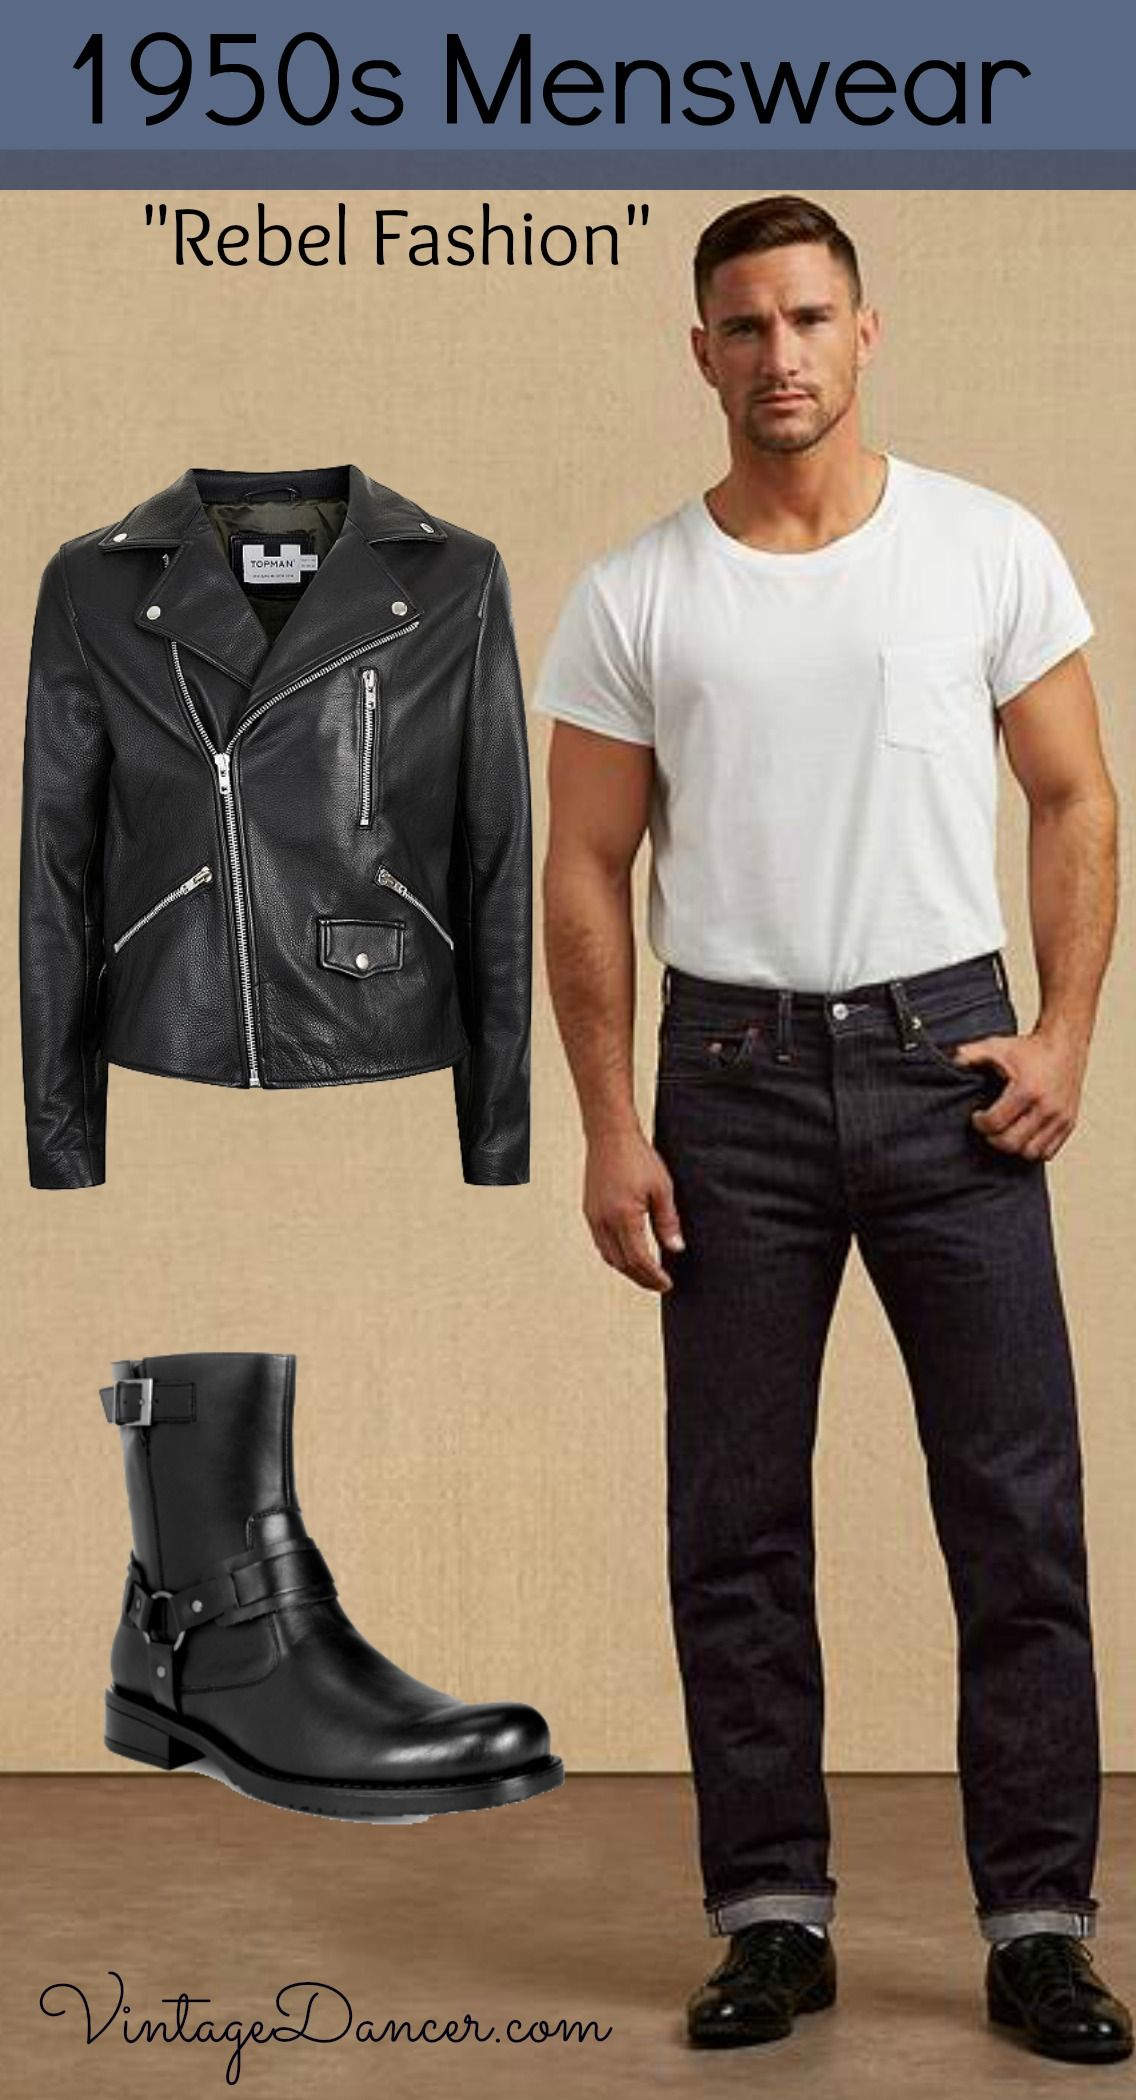 50s Outfits For Men 1950s Fashion Menswear Greaser